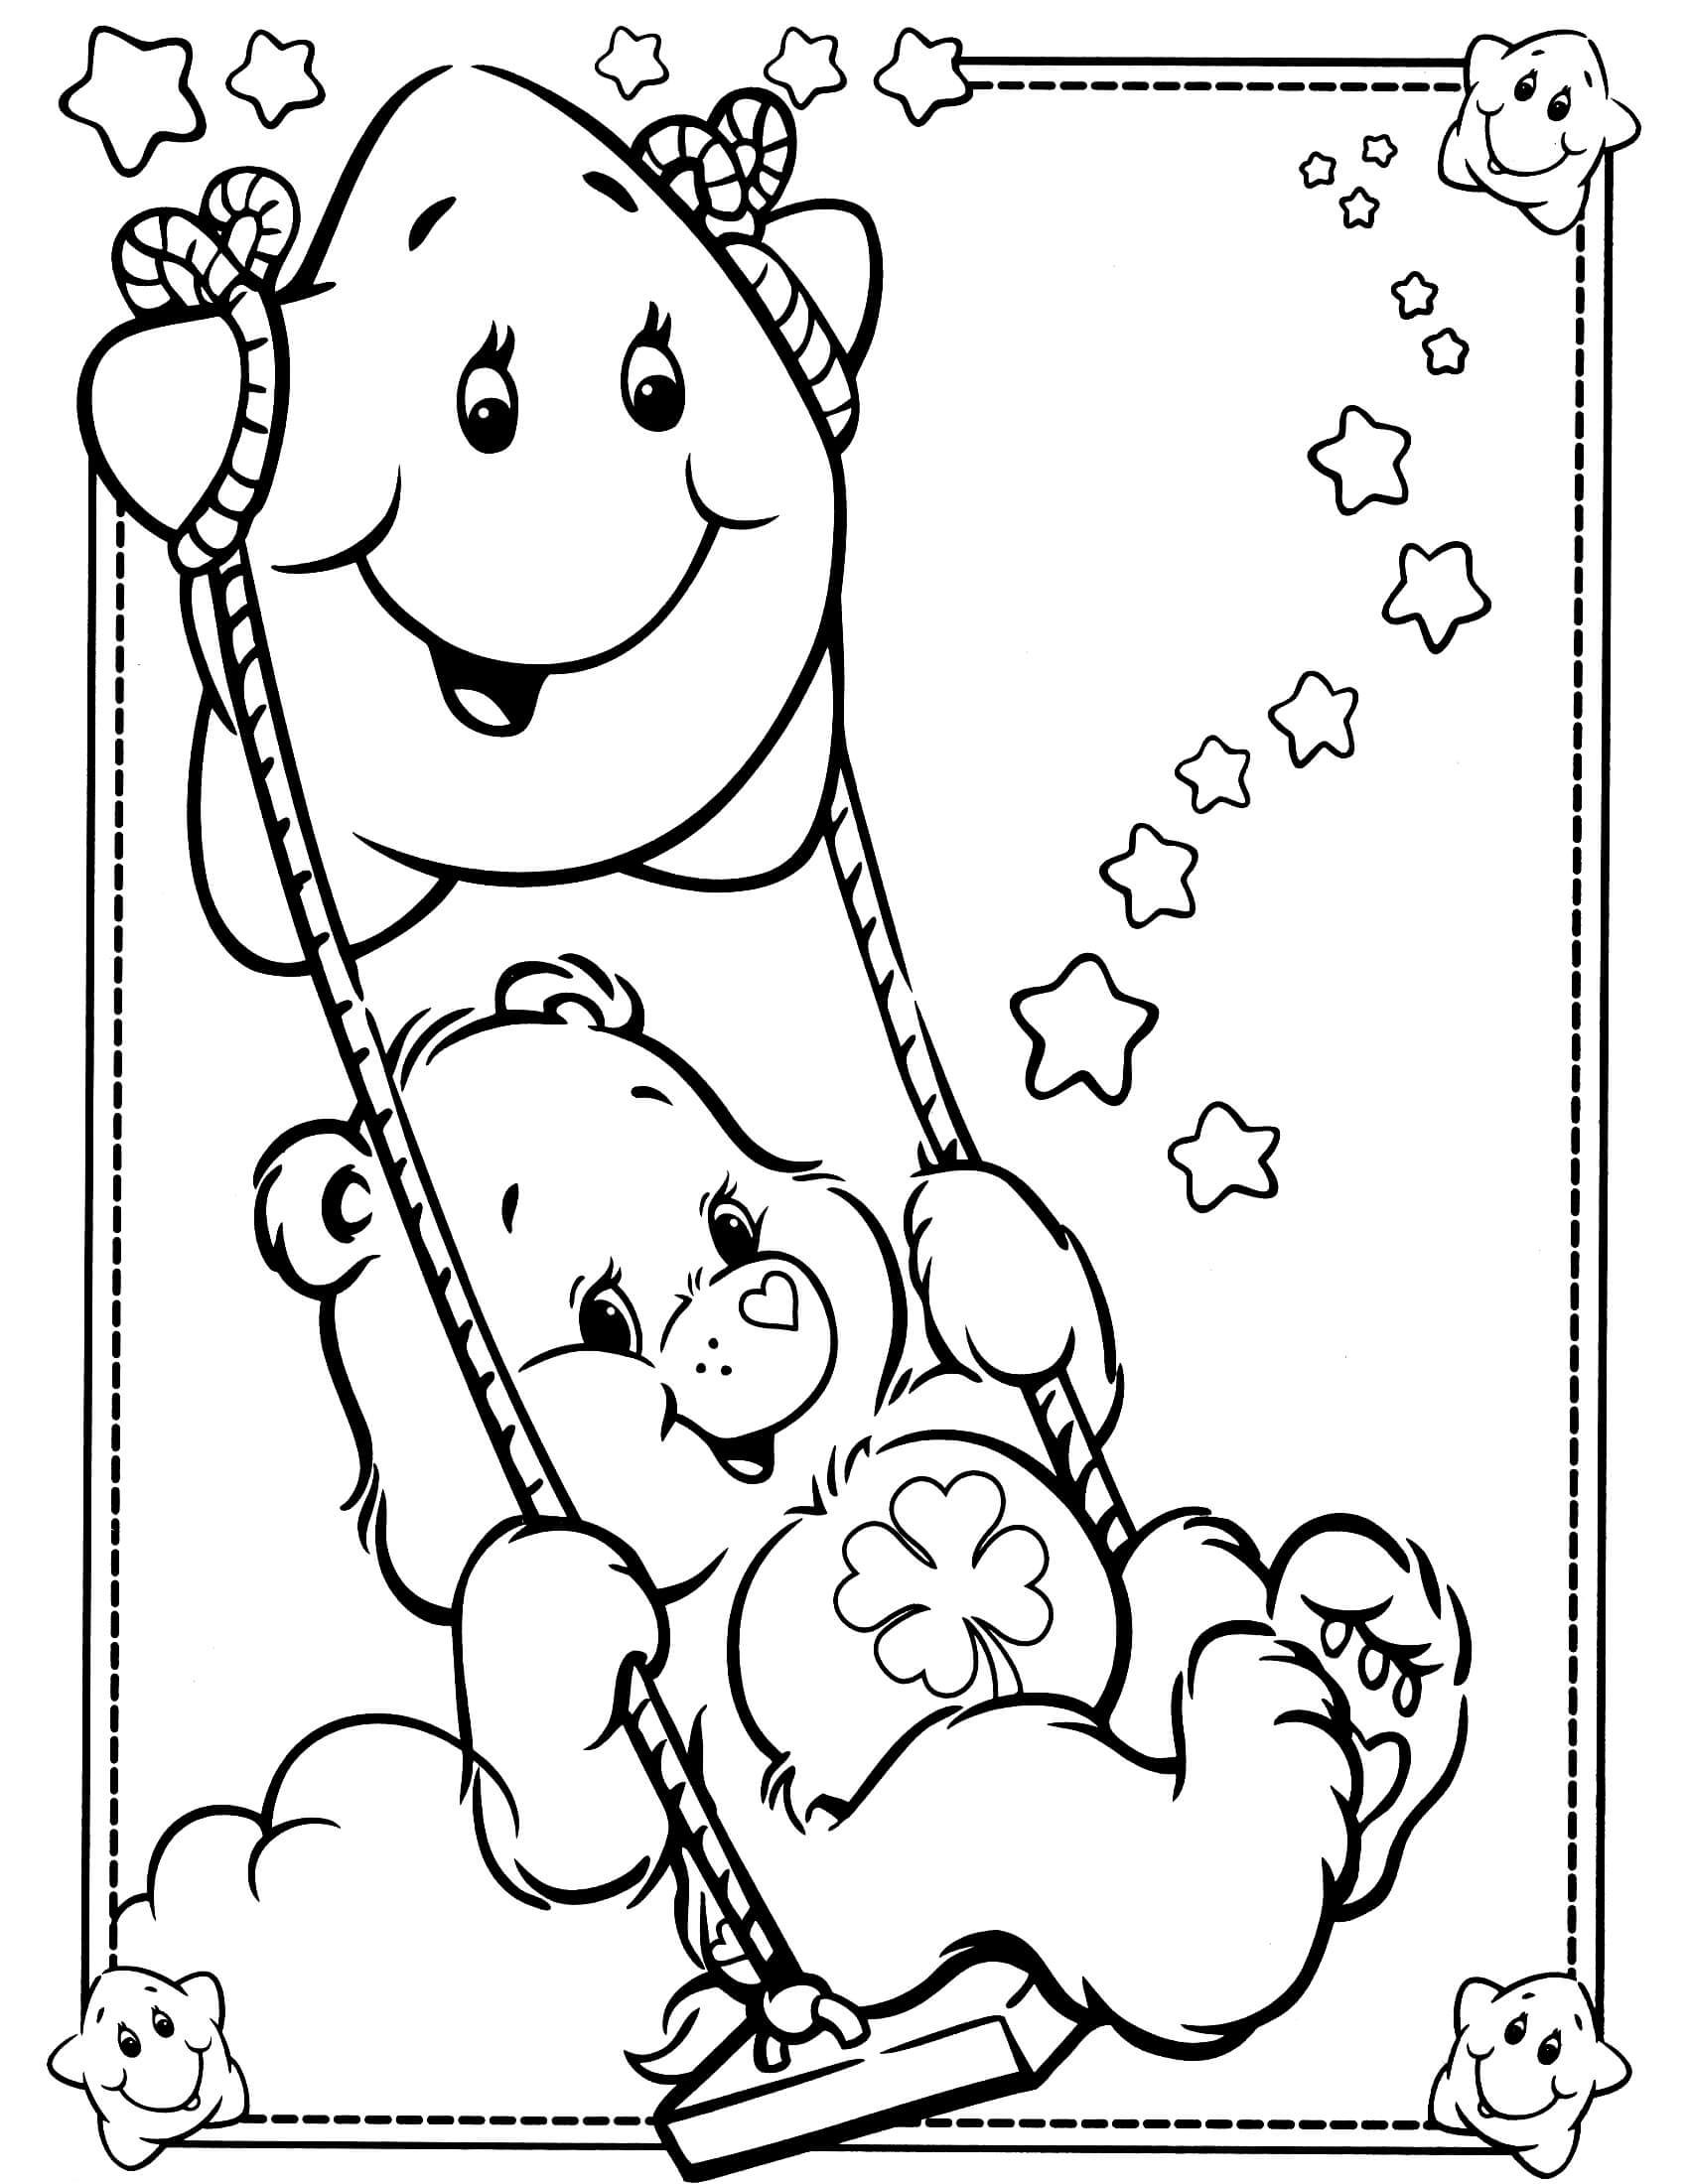 Lucky Swing Bear Coloring Pages Cute Coloring Pages Adult